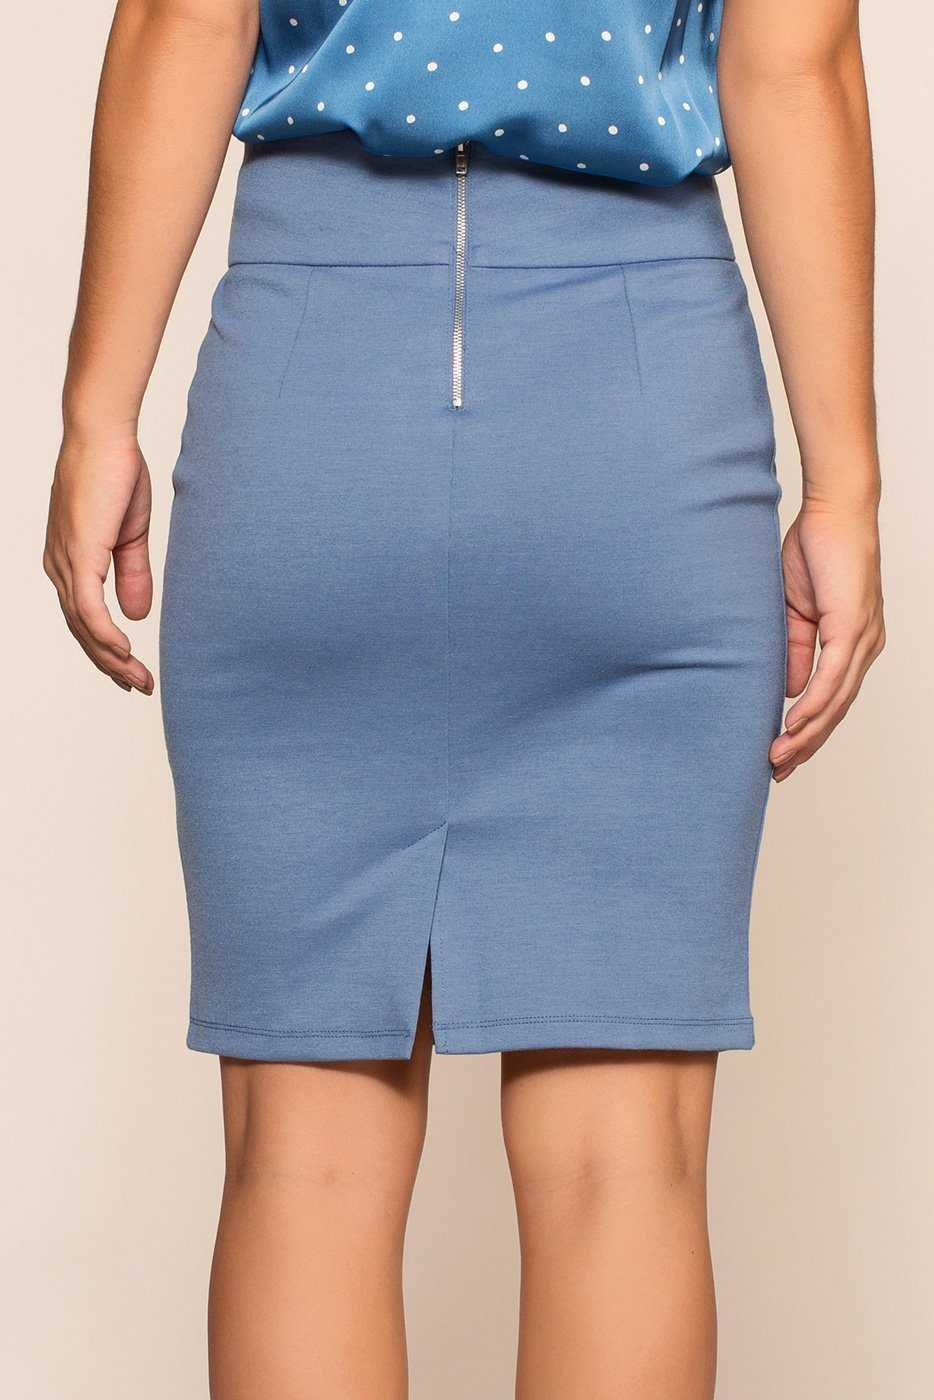 Skirts - End Game Skirt - Blue